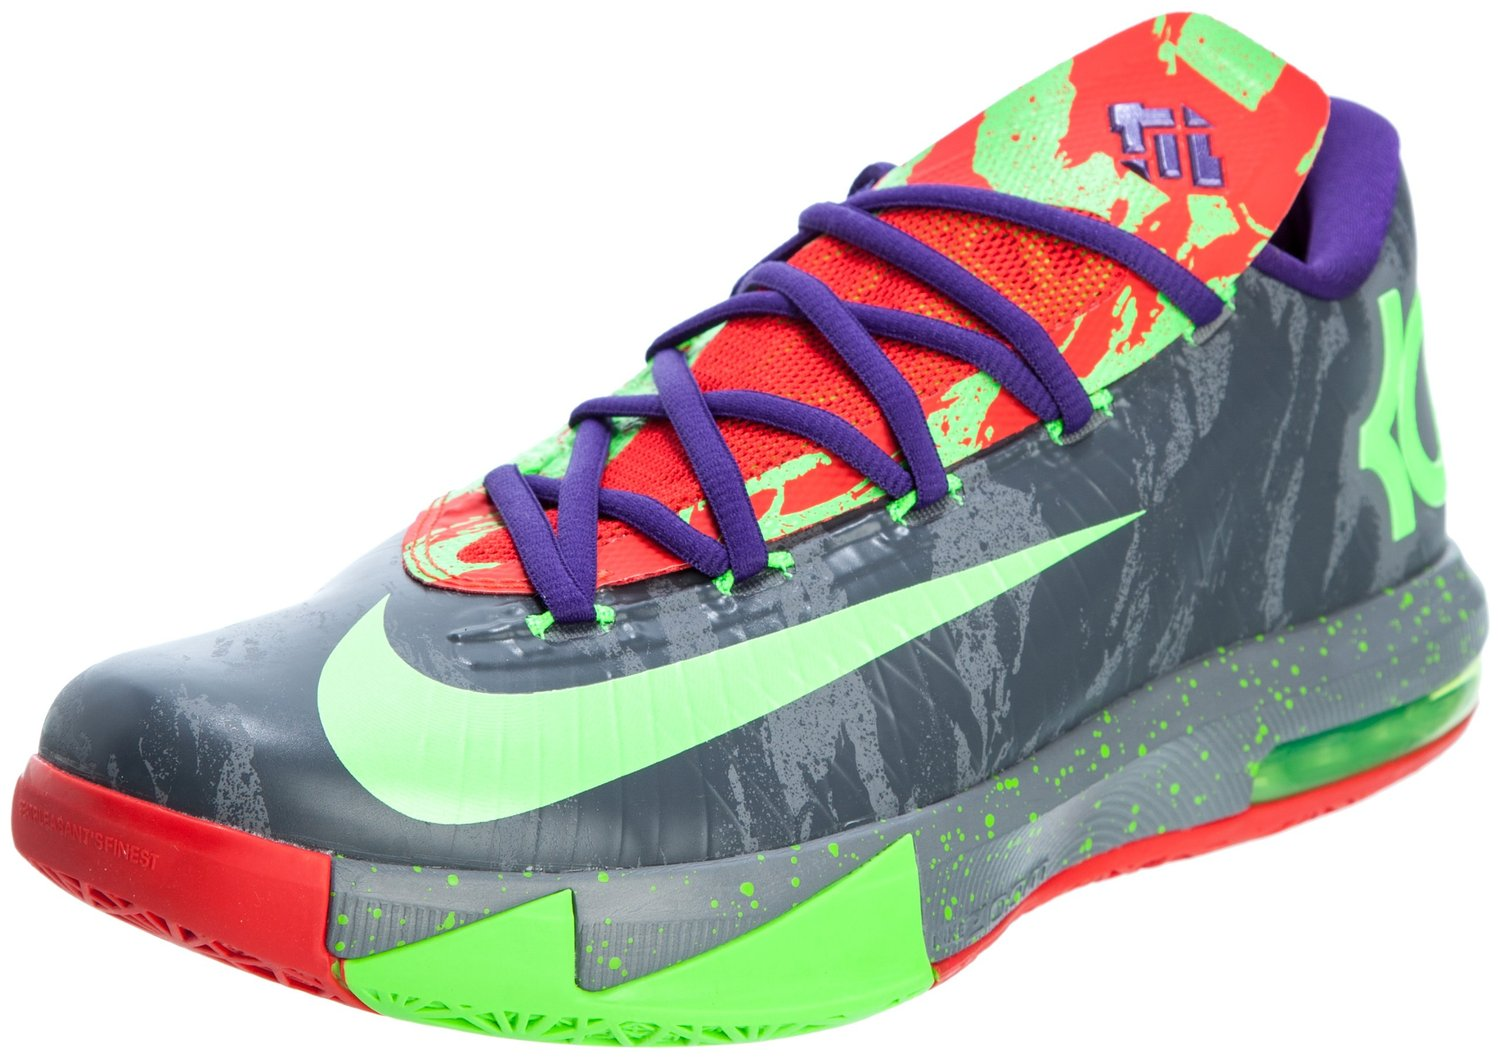 size 40 cb2a3 dd5a6 Recommended For You. NIKE KD VI Kevin Durant Basketball Shoes ...